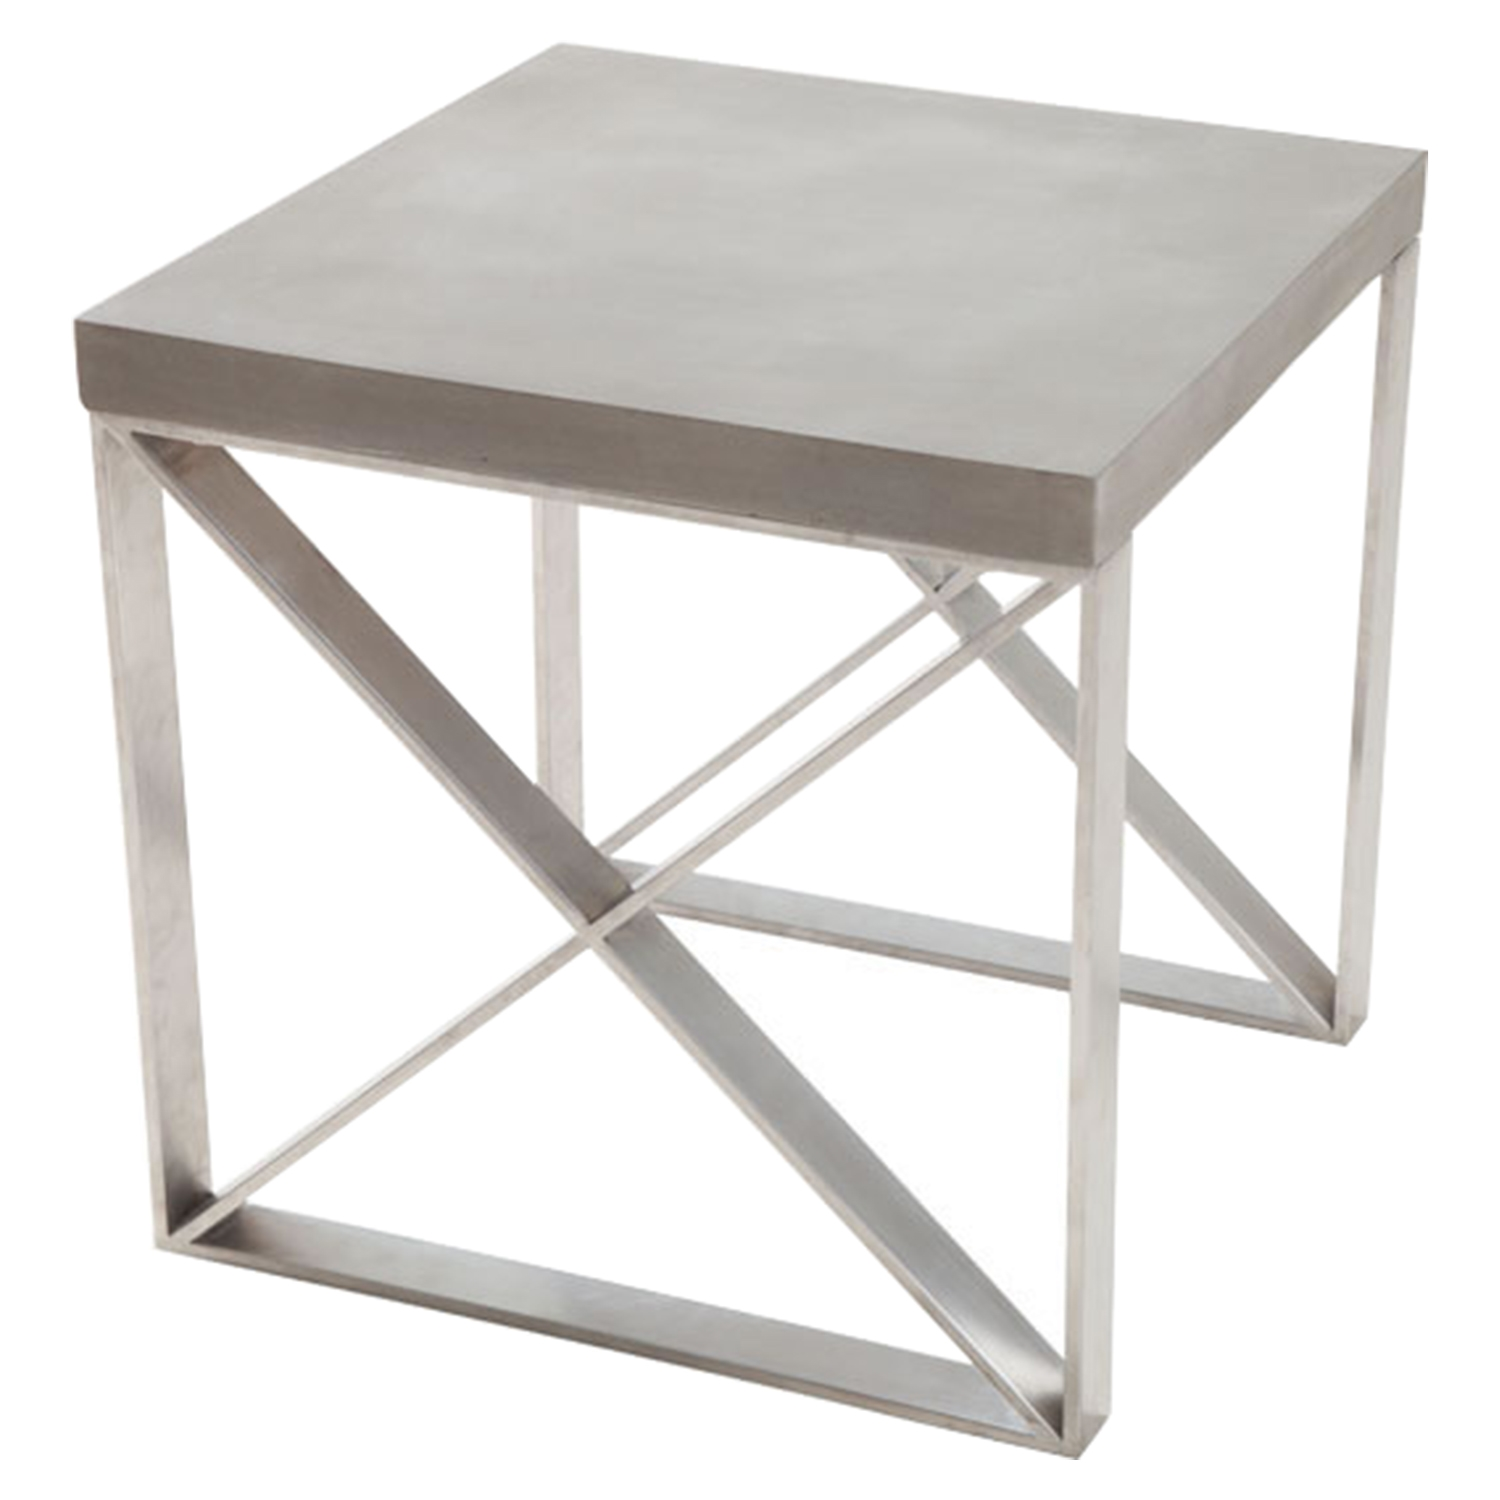 Paragon Side Table - Cement